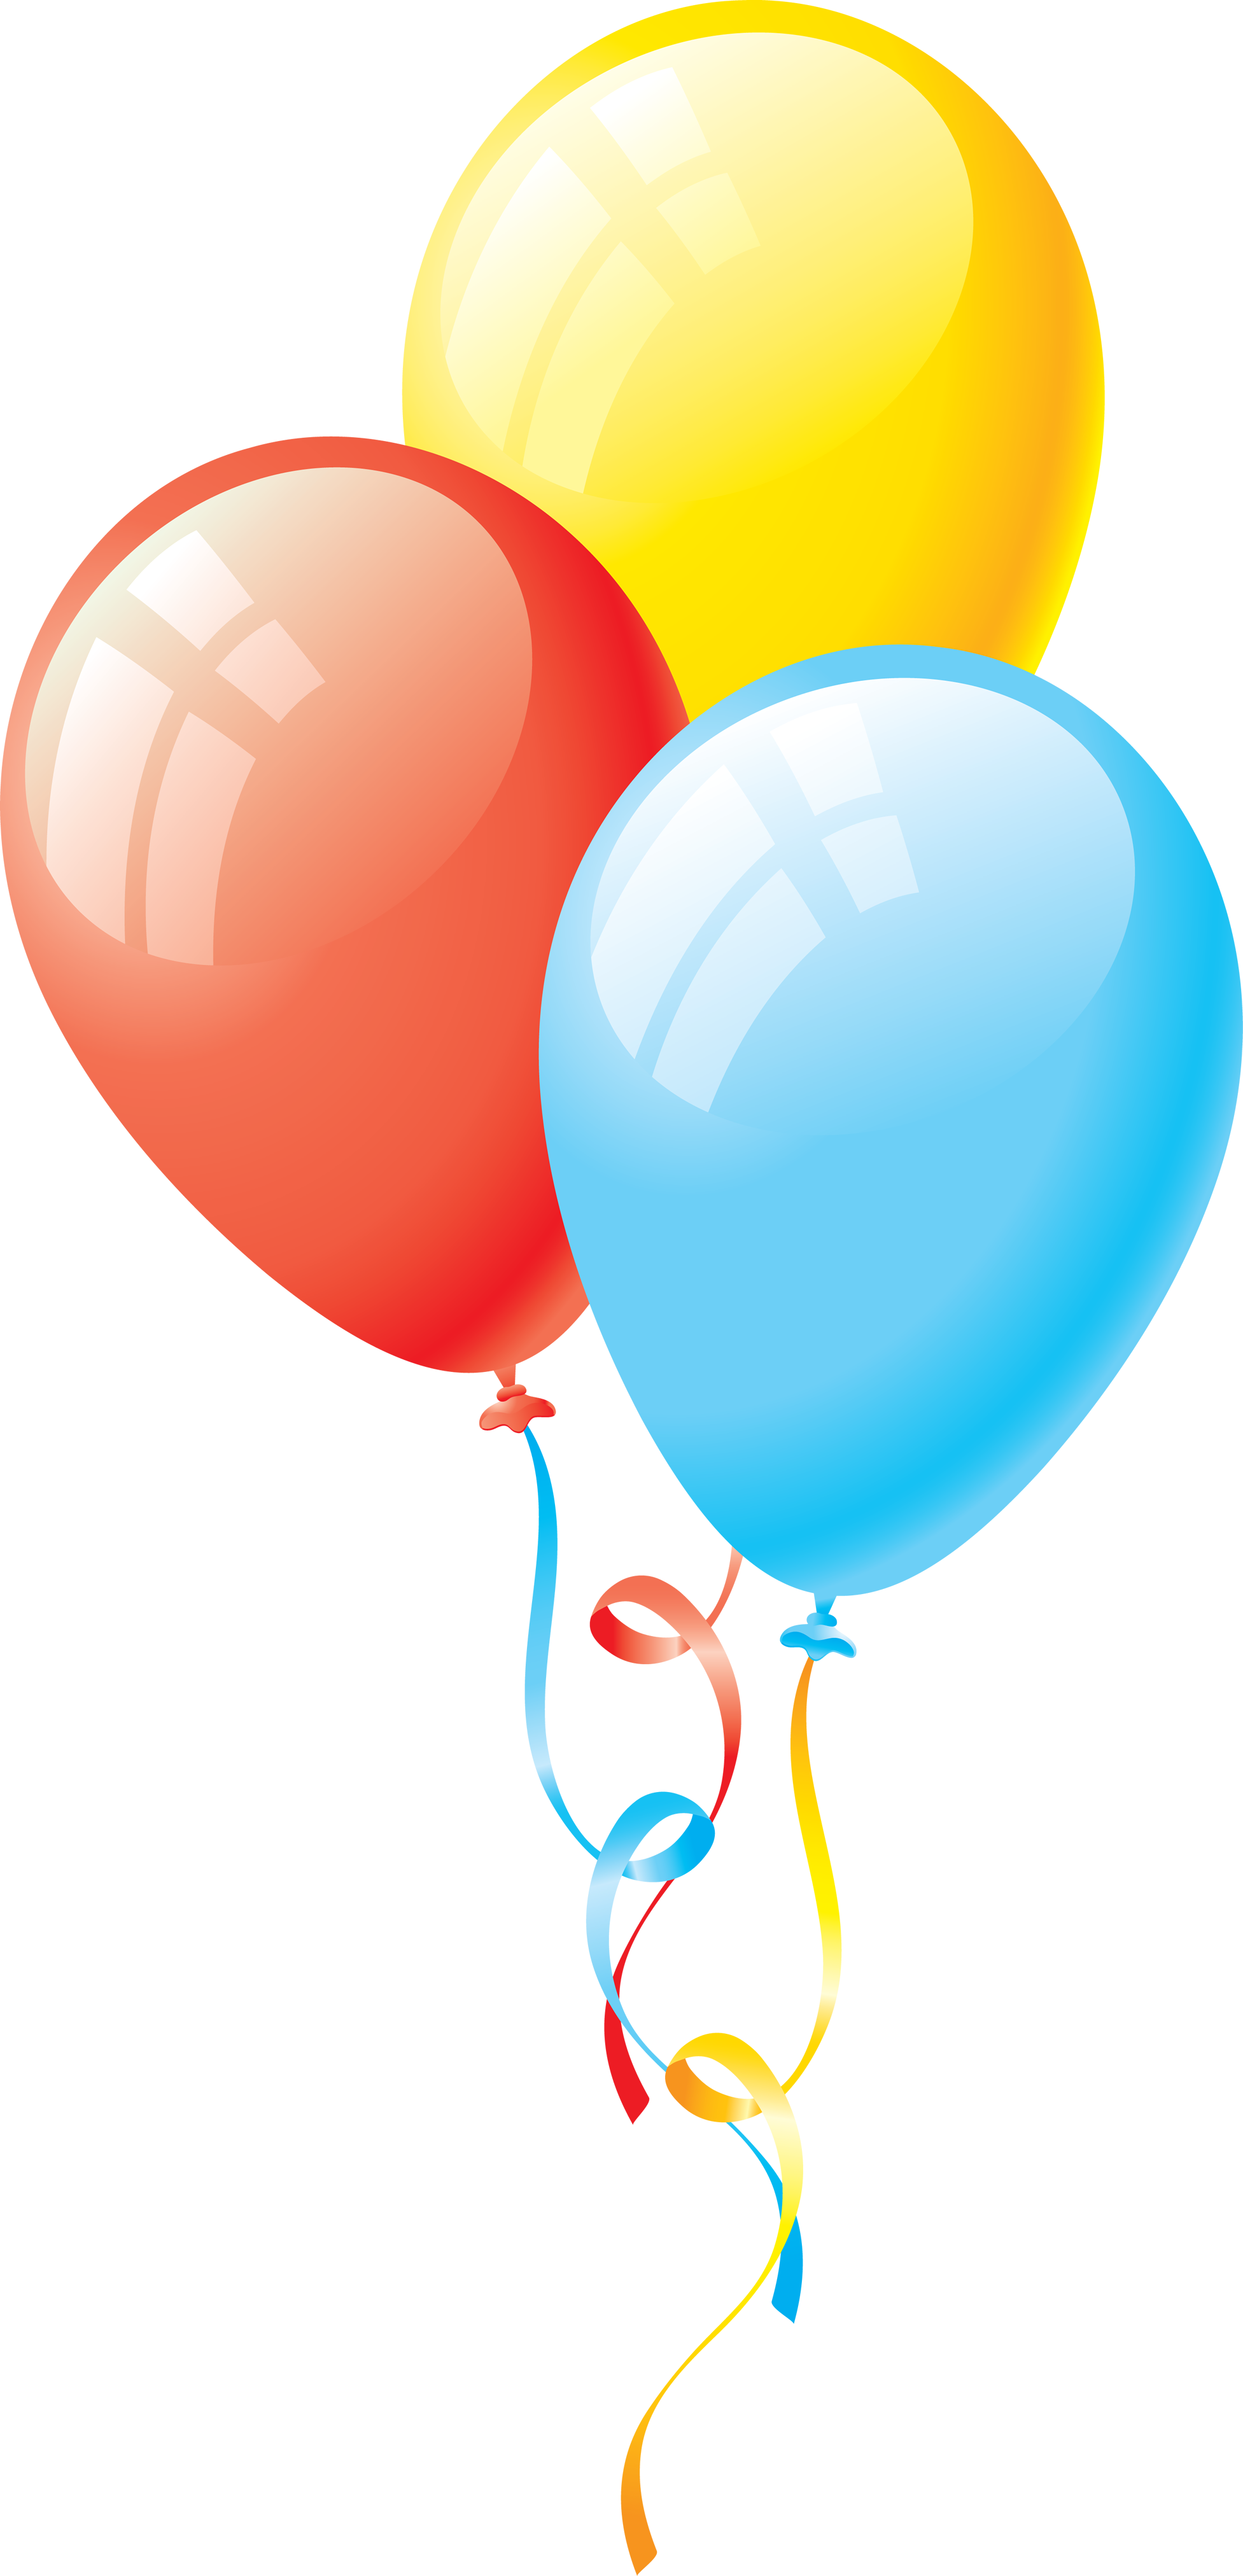 3 balloon png. Colorful image free download